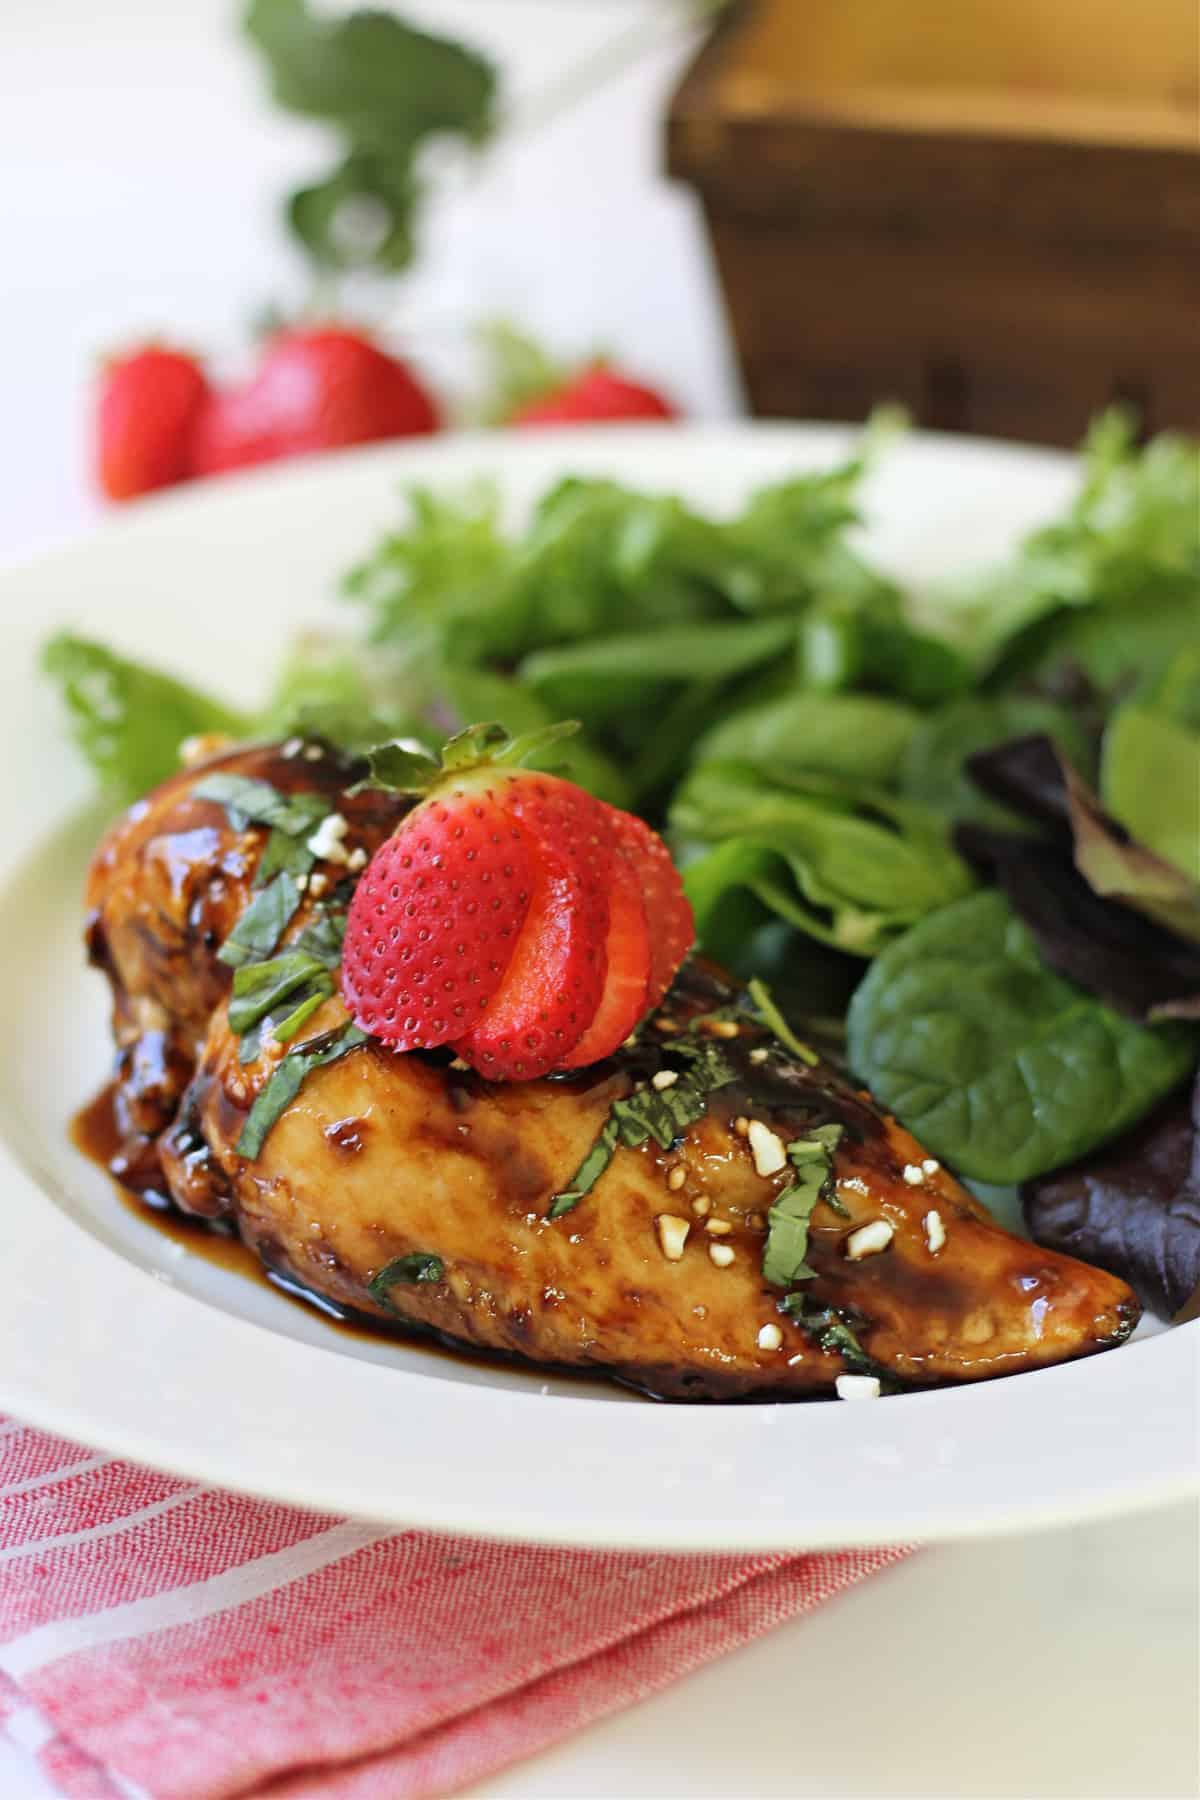 Close up of Strawberry Chicken on a white plate with a side salad.